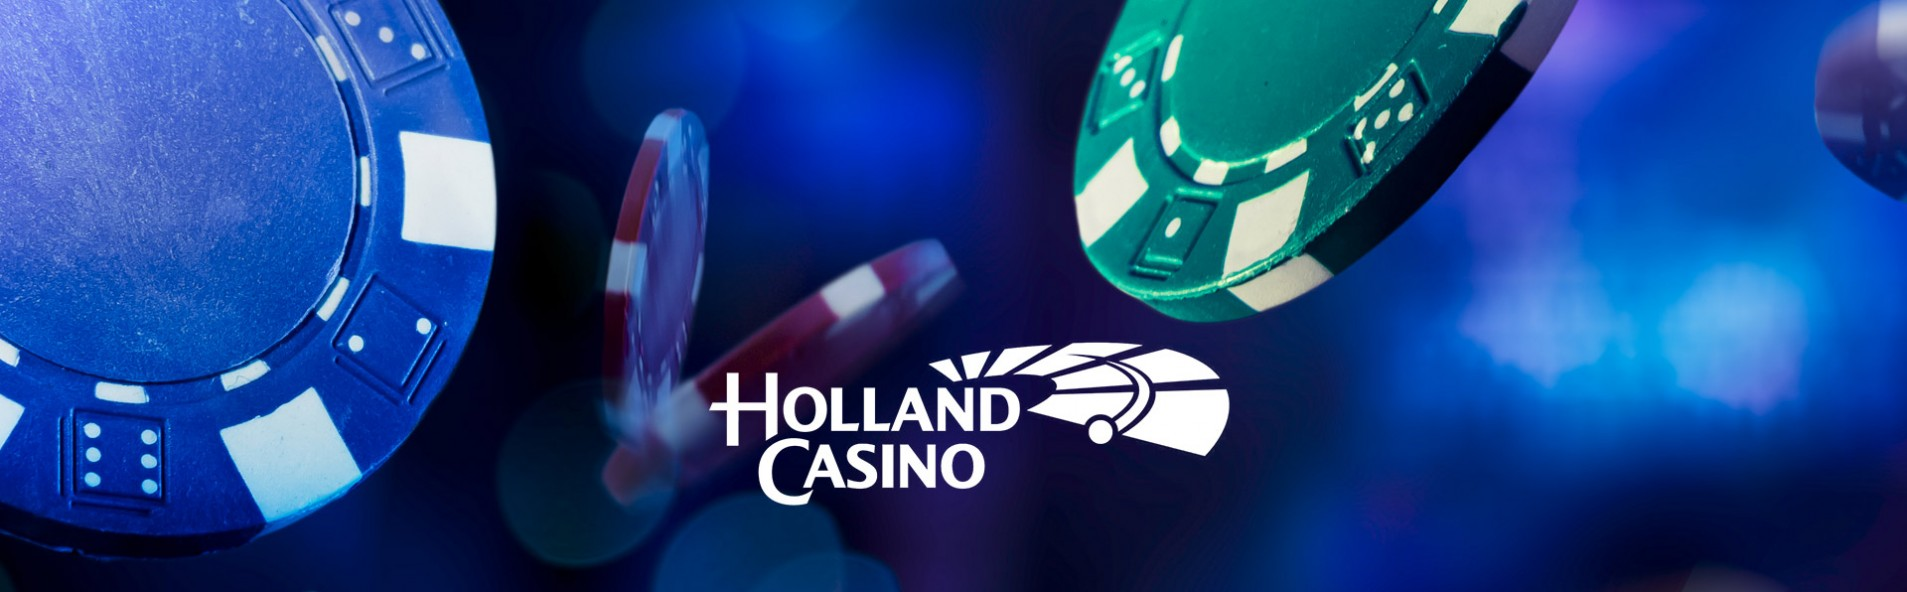 Holland Casino & Spinnin' Records